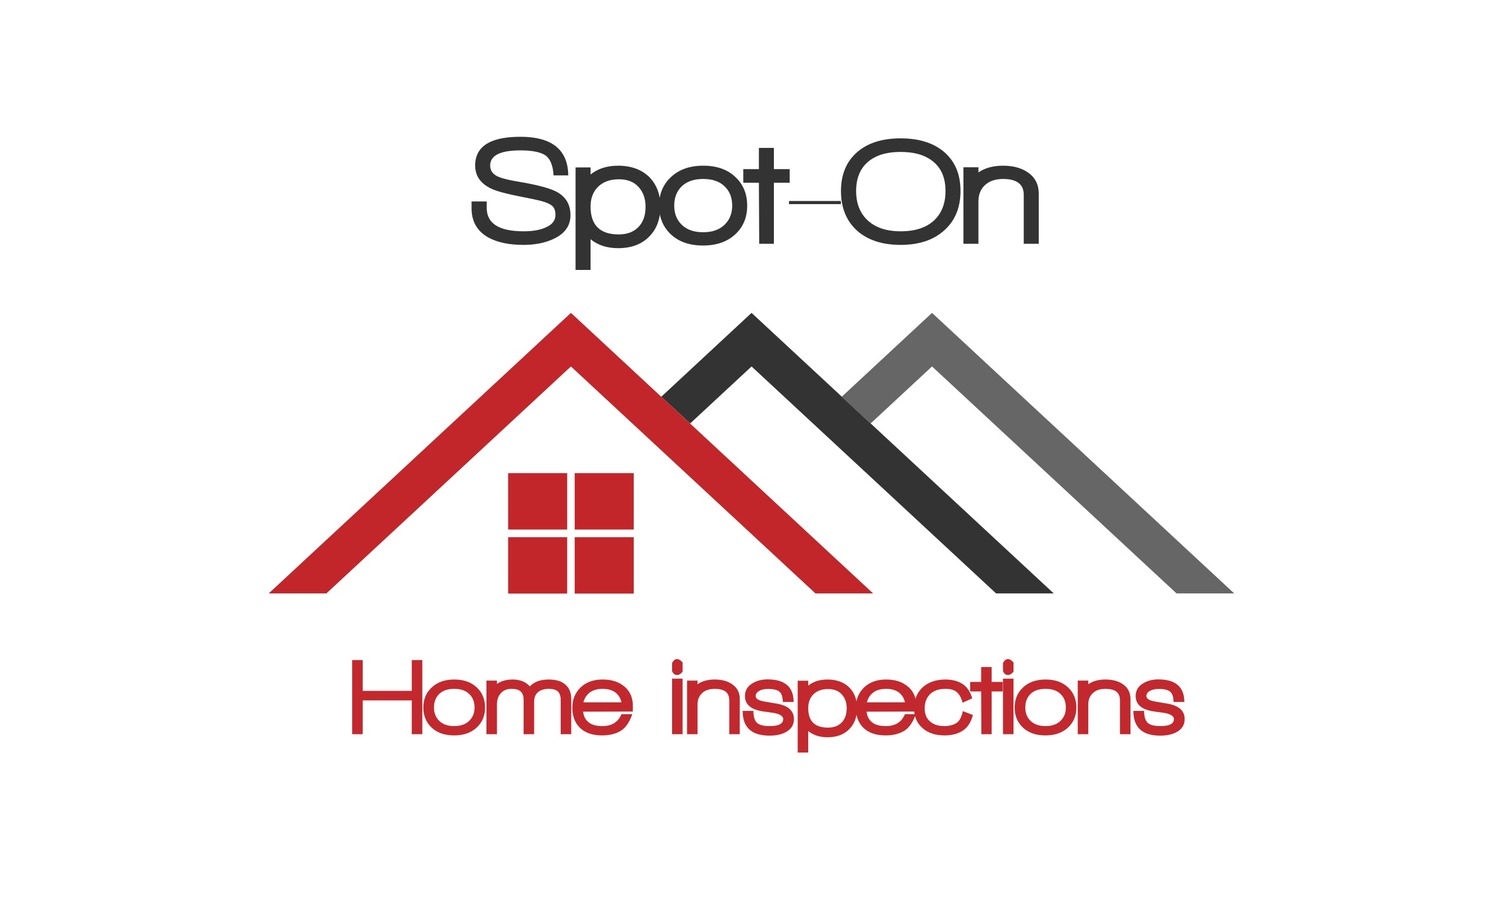 SPOT-ON HOME INSPECTIONS